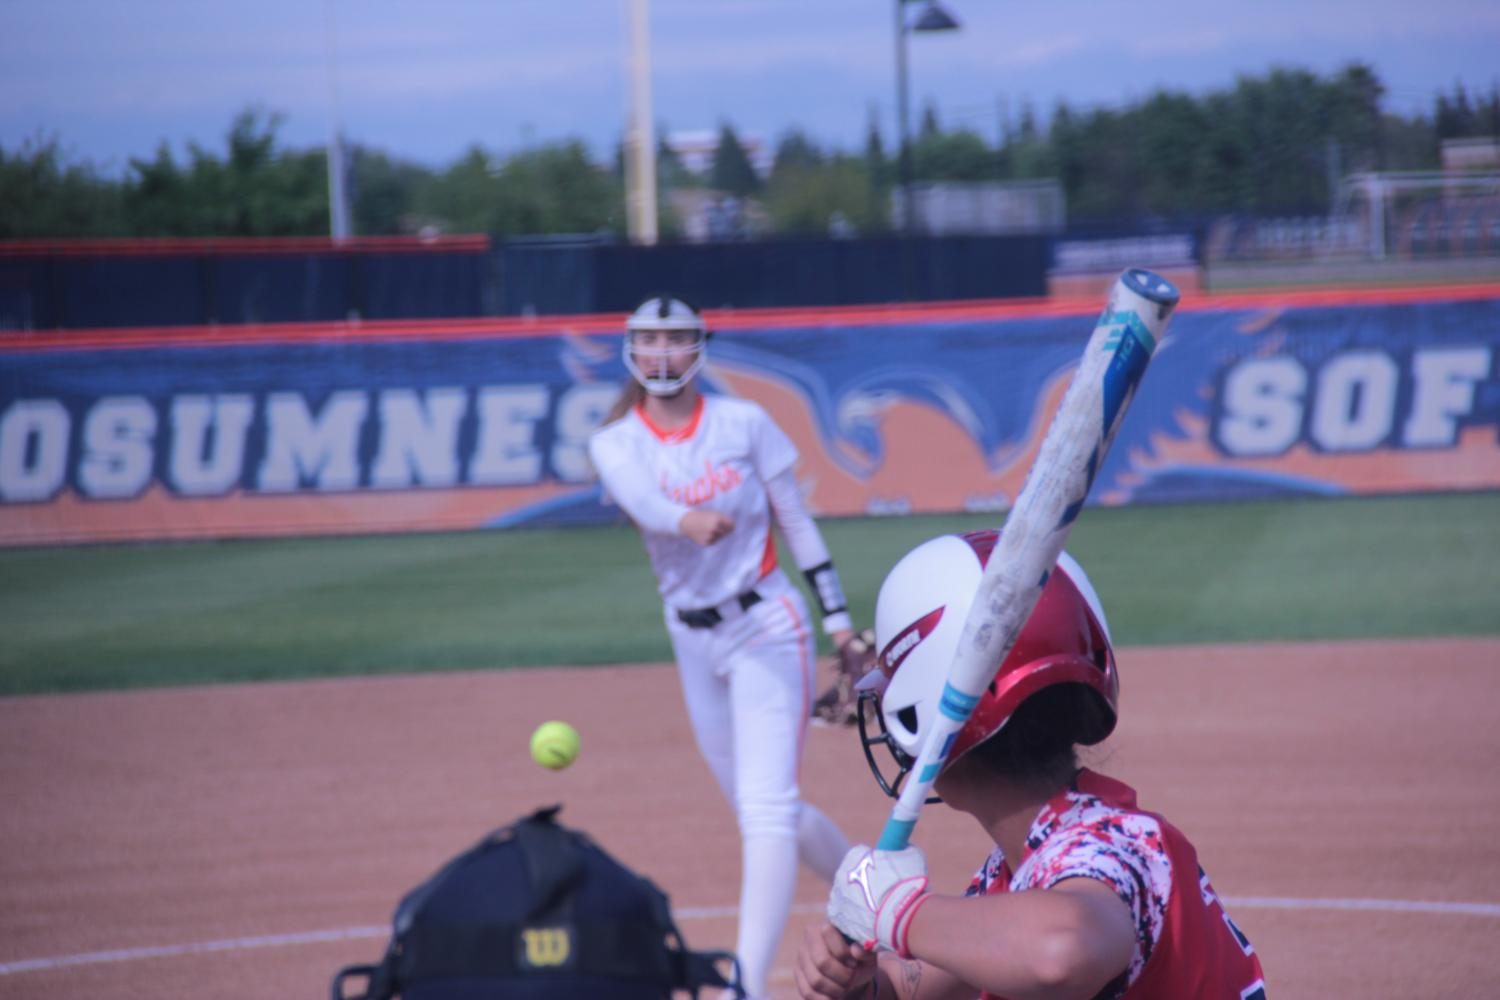 Freshman+pitcher+Brittany+Baroni+hurls+a+pitch+to+a+Santa+Rosa+Junior+College+hitter+on+April+25.